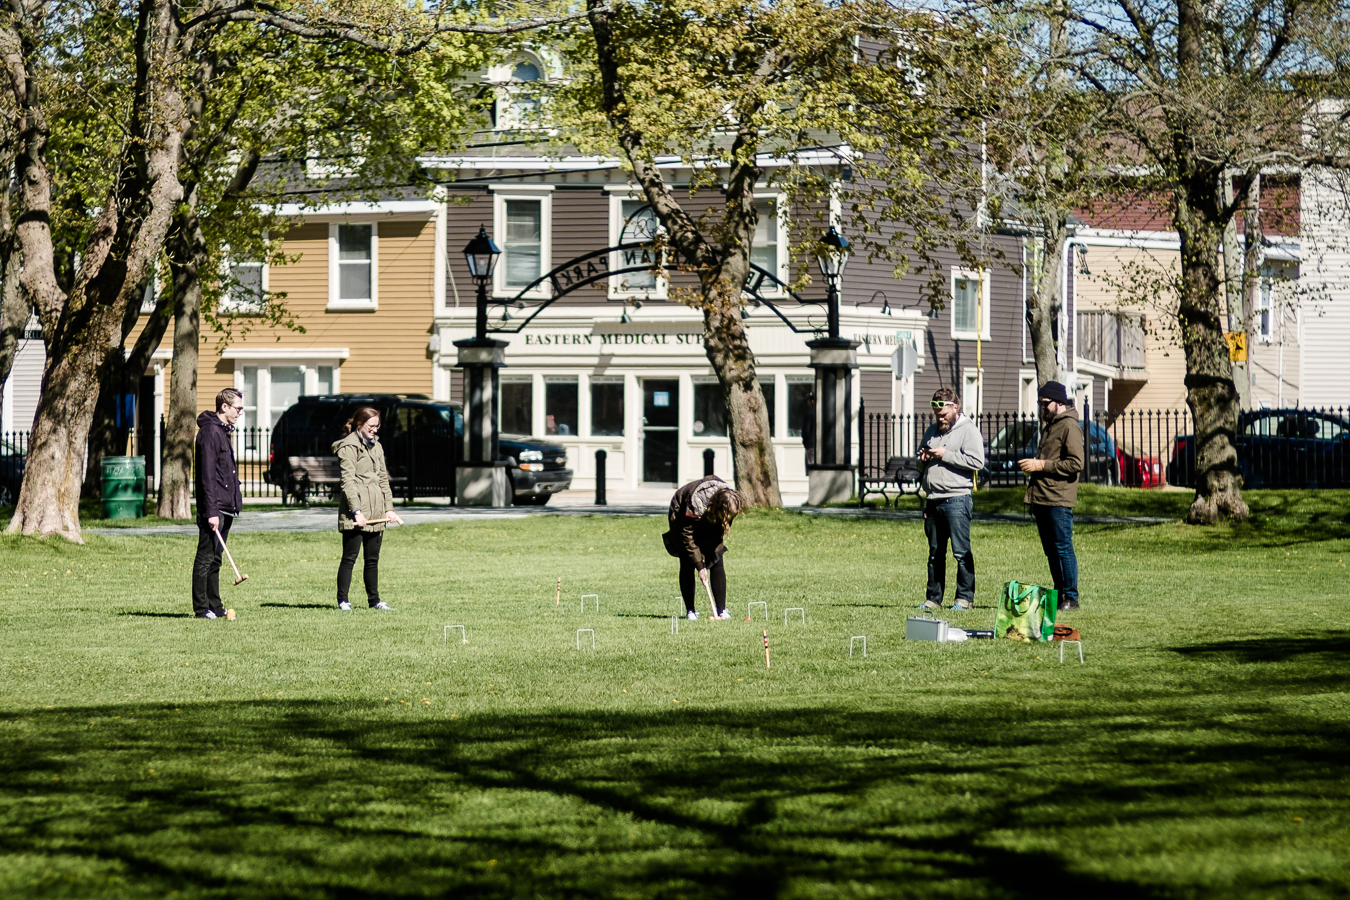 Members of Perfect Day Design Studio have a game of croquet  - Bannerman Park